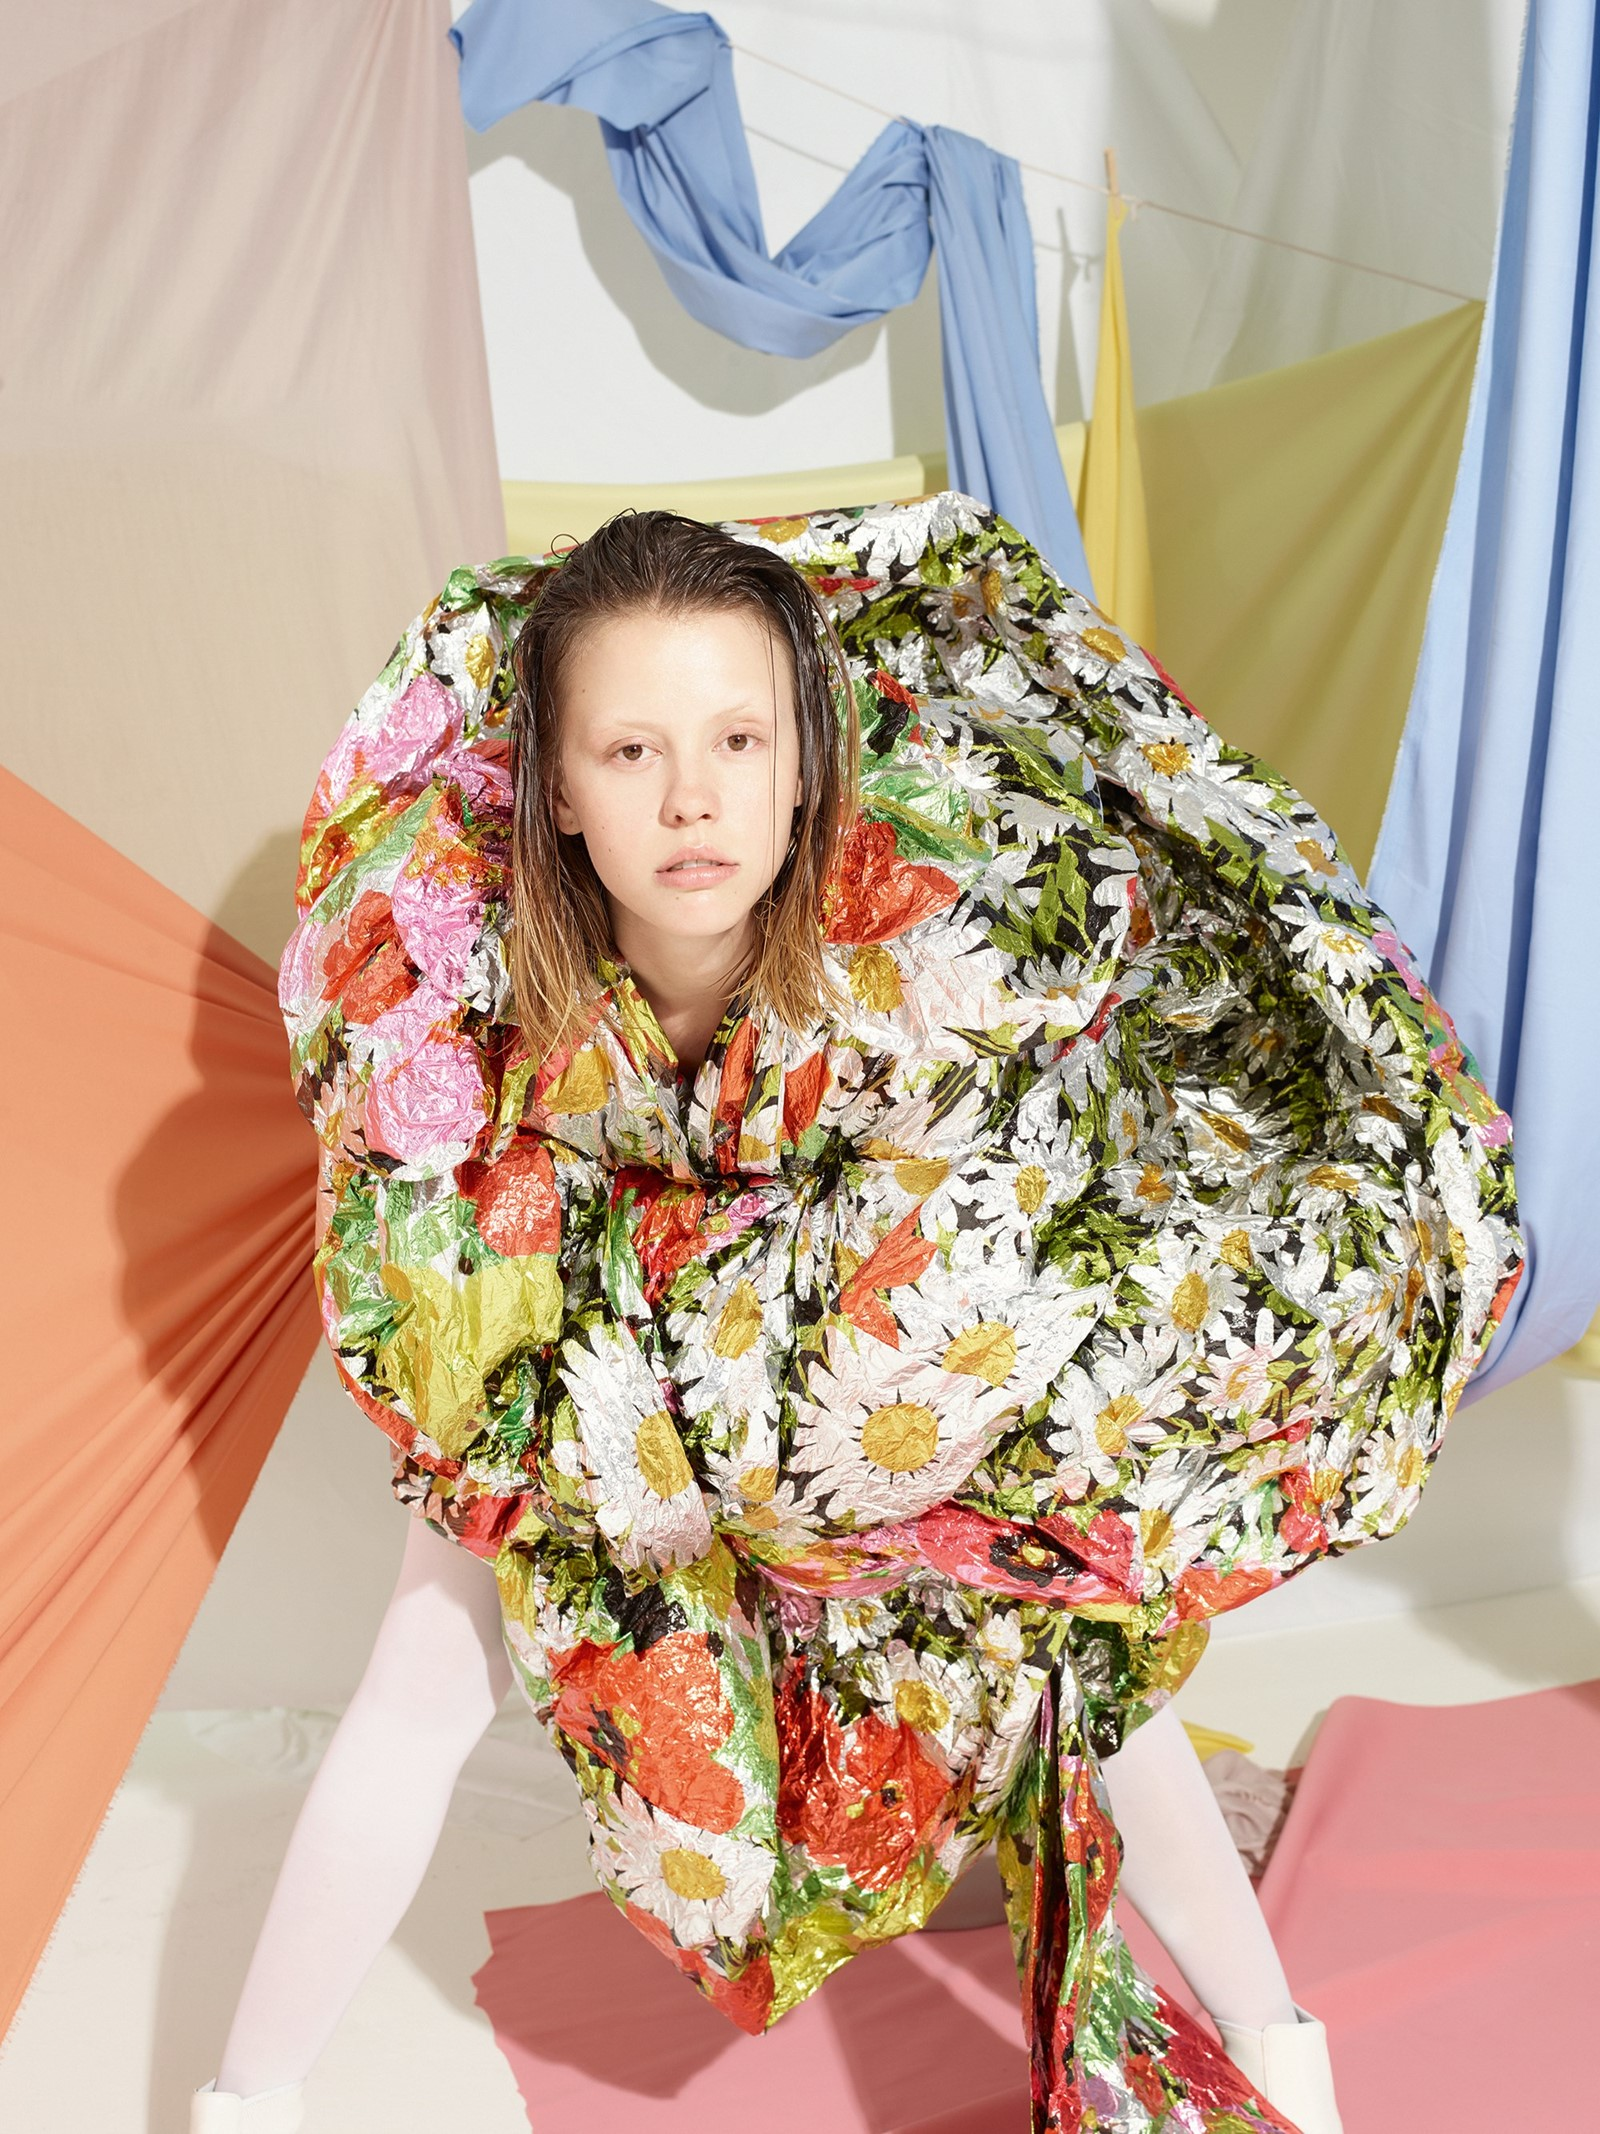 Photography by Viviane Sassen, Styling by Katie Shillingford